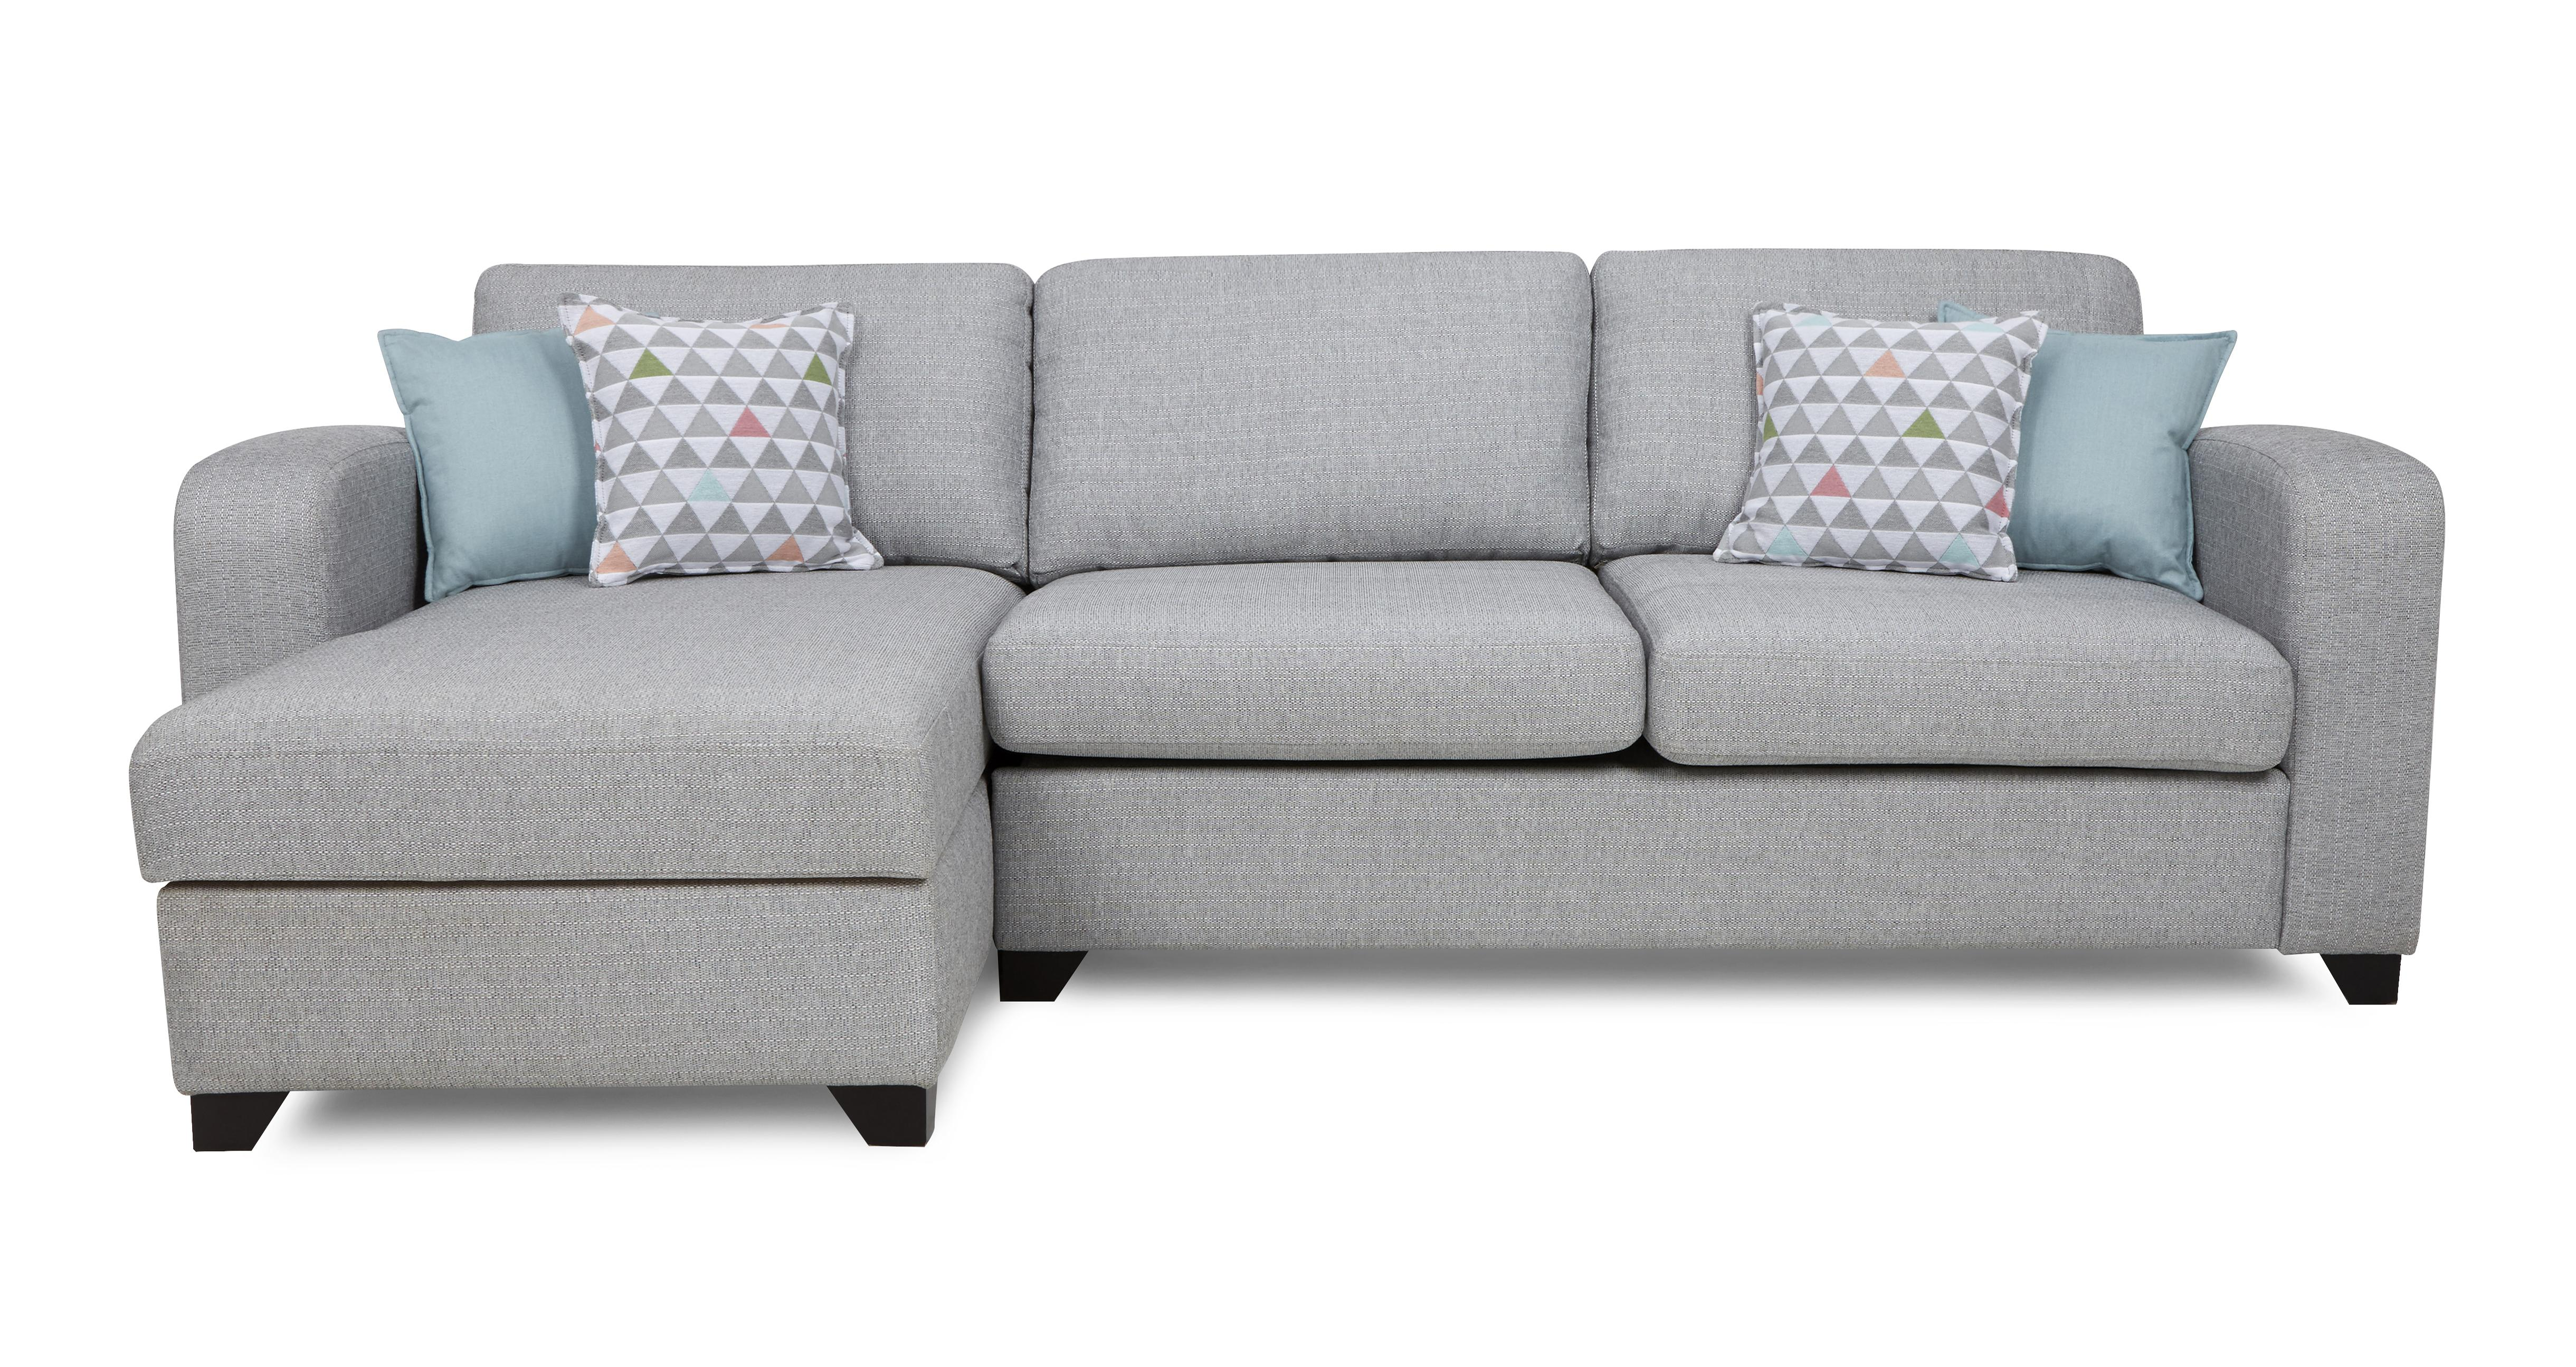 chair bed with arms uk purchase chairs online lydia left hand facing chaise end 3 seater sofa dfs